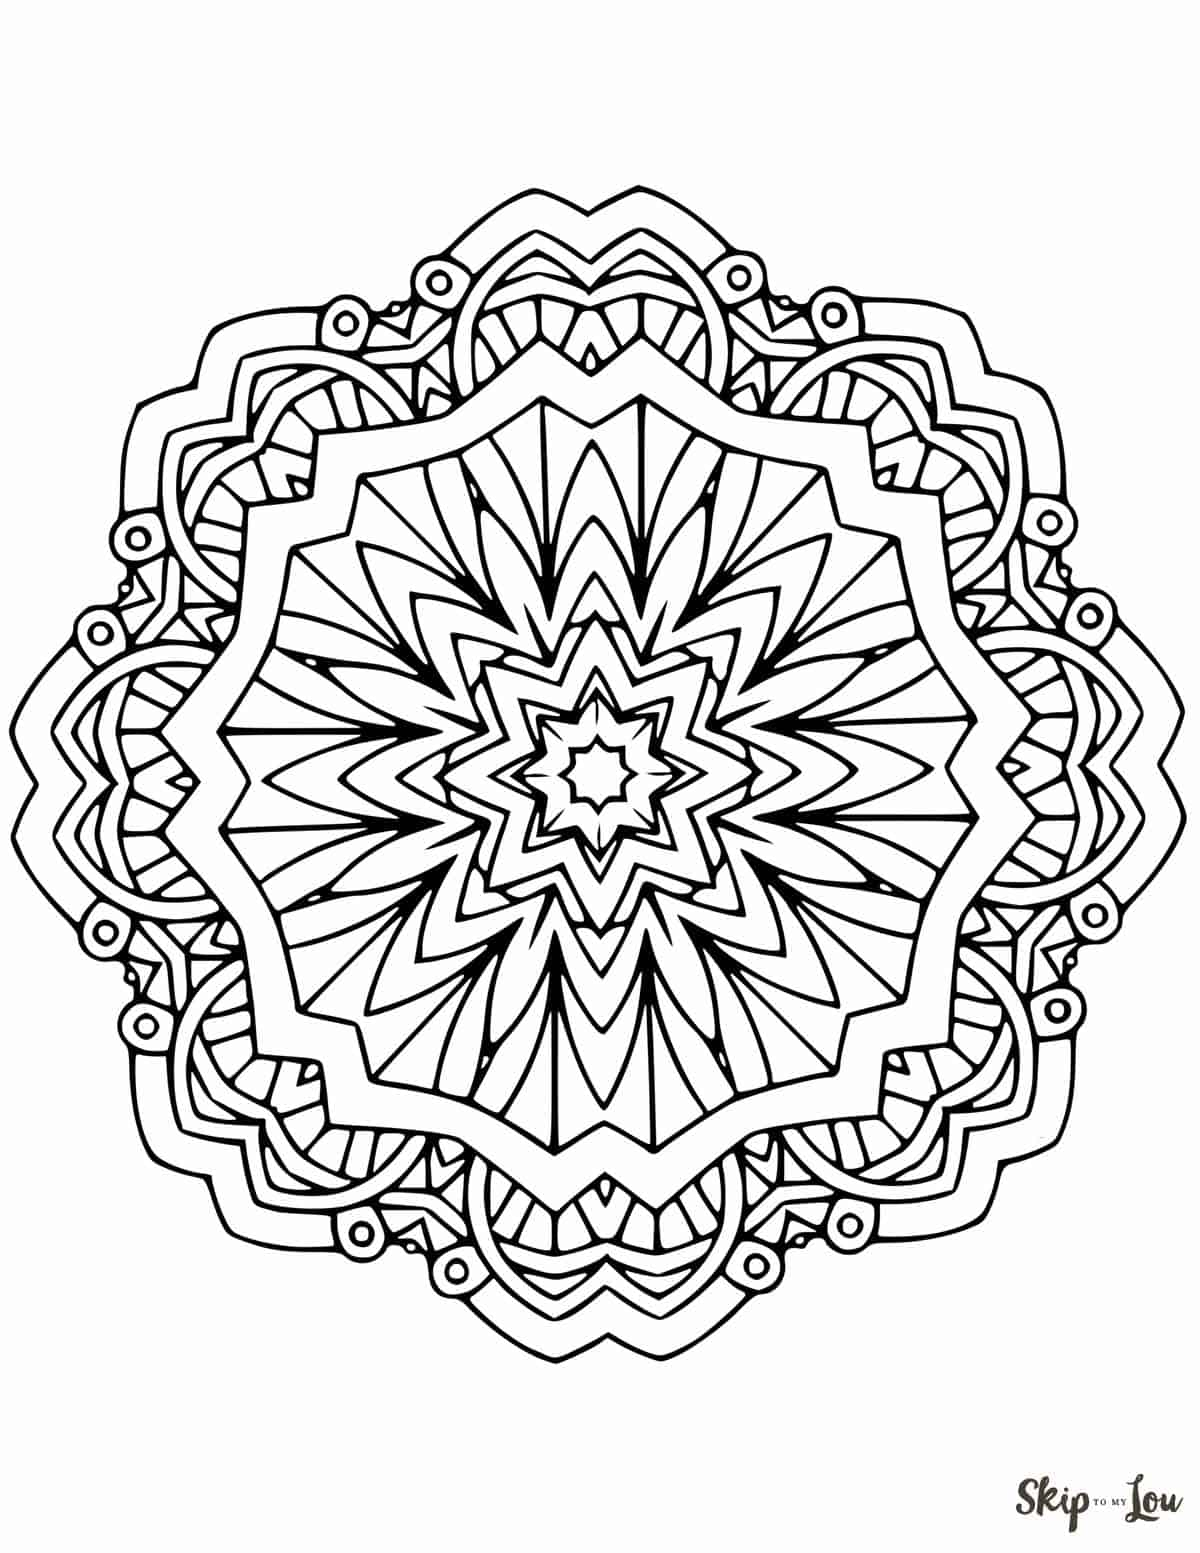 free printable coloring pages mandala designs | Beautiful FREE Mandala Coloring Pages | Skip To My Lou